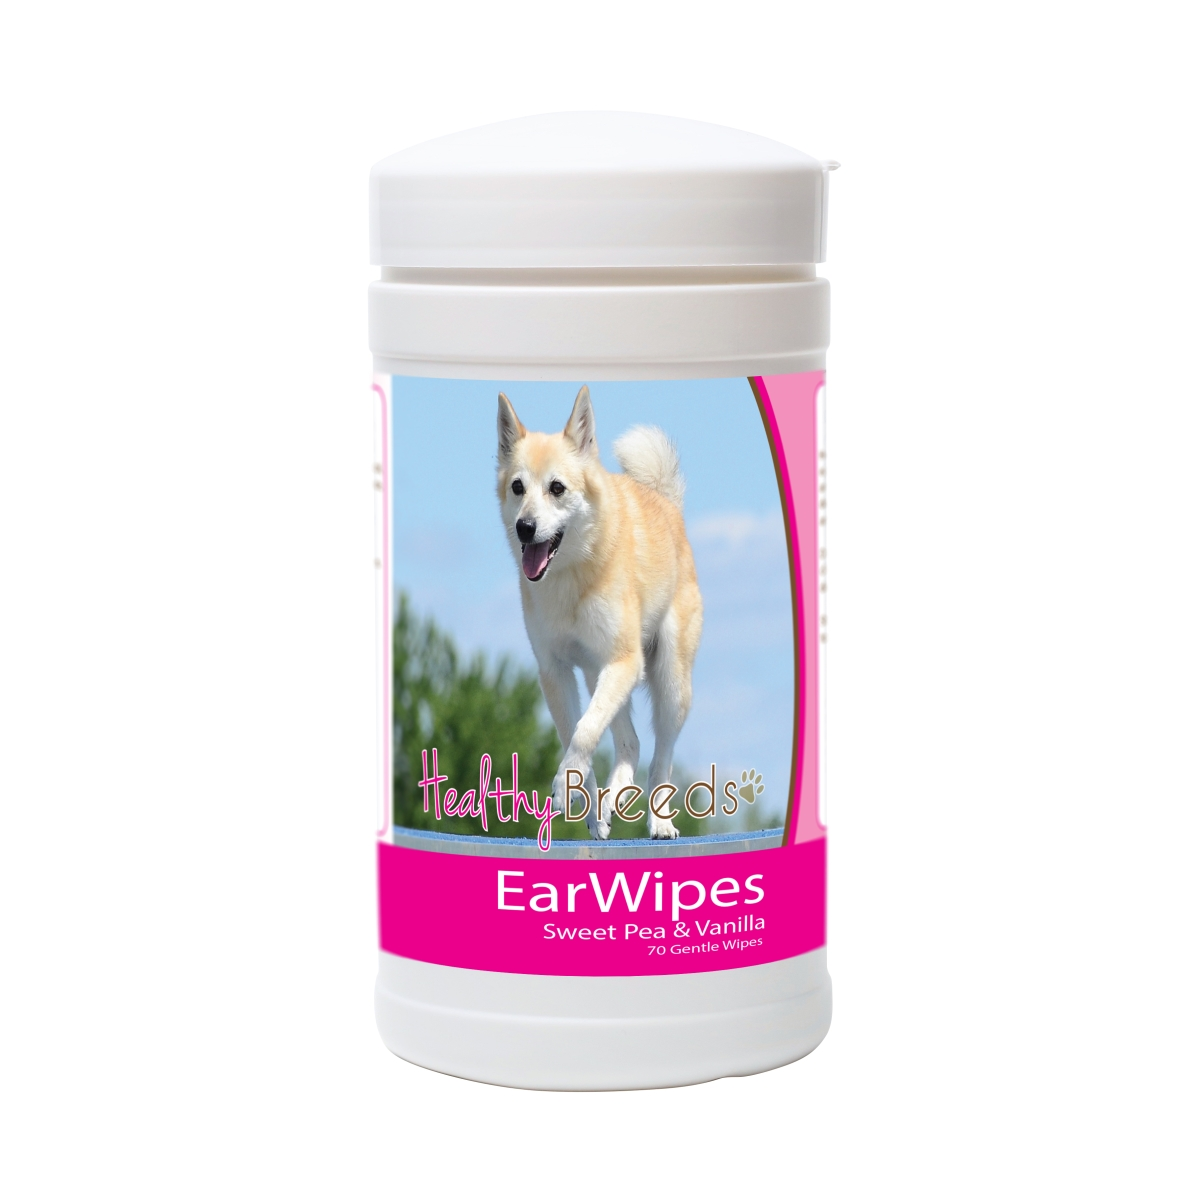 Healthy Breeds 840235171355 Norwegian Buhund Ear Wipes - 70 Count